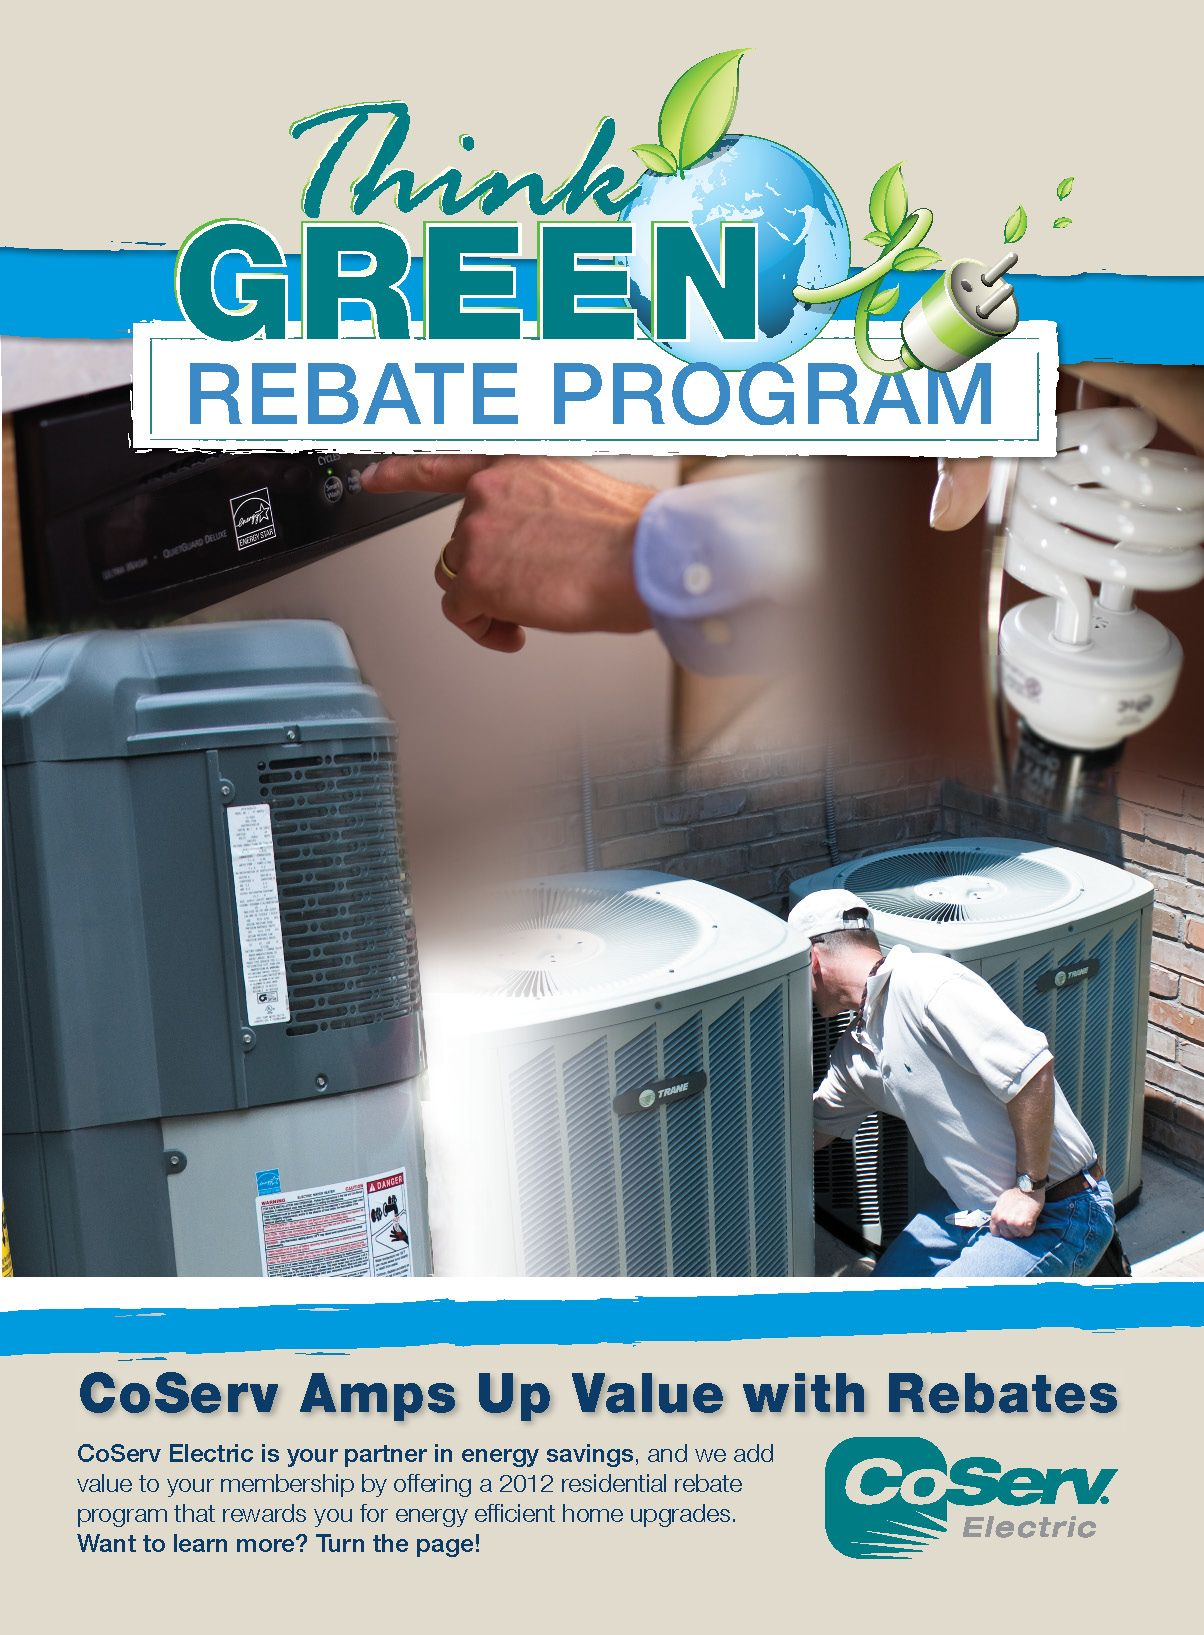 March 2012: Think Green Rebate Program amps up the value